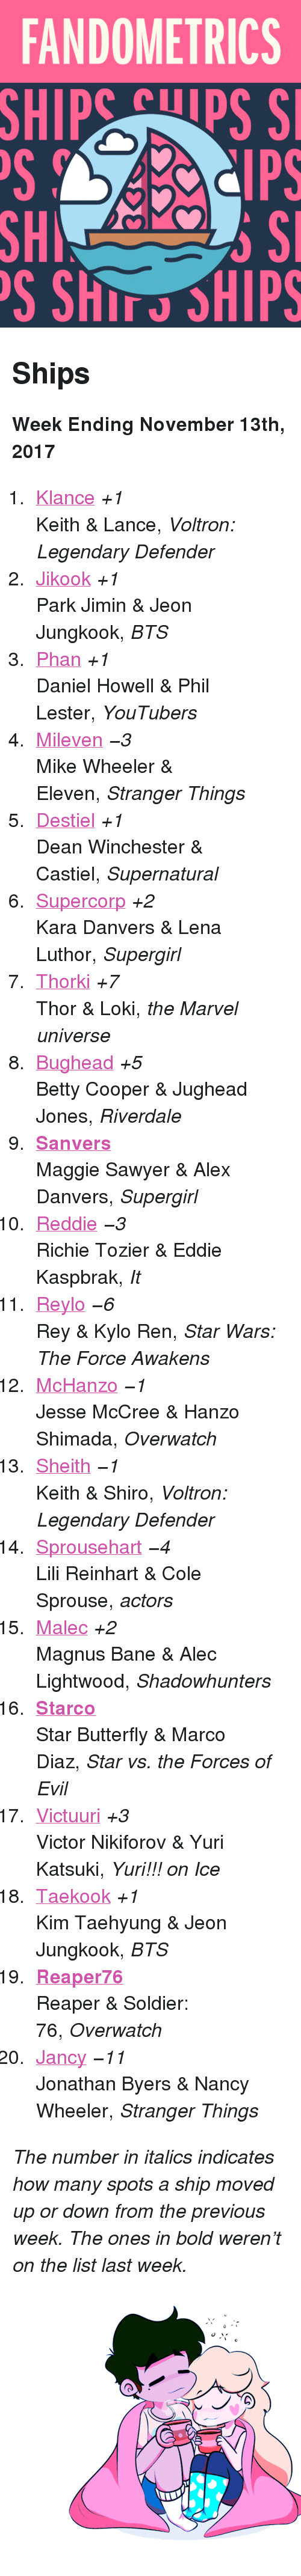 "Star Wars: The Force Awakens: FANDOMETRICS  SHIP  Cps S  SH  S ShIT SHIPS <h2>Ships</h2><p><b>Week Ending November 13th, 2017</b></p><ol><li><a href=""http://tumblr.co/6136DBjso"">Klance</a> <i>+1</i><br/>Keith &amp; Lance, <i>Voltron: Legendary Defender</i></li><li><a href=""http://tumblr.co/6138DBjsq"">Jikook</a> <i>+1</i><br/>Park Jimin &amp; Jeon Jungkook, <i>BTS</i></li><li><a href=""http://tumblr.co/6131DBjst"">Phan</a> <i>+1</i><br/>Daniel Howell &amp; Phil Lester, <i>YouTubers</i></li><li><a href=""http://tumblr.co/6132DBjsQ"">Mileven</a> <i><i>−3</i></i><br/>Mike Wheeler &amp; Eleven, <i>Stranger Things</i></li><li><a href=""http://tumblr.co/6134DBjsa"">Destiel</a> <i>+1</i><br/>Dean Winchester &amp; Castiel, <i>Supernatural</i></li><li><a href=""http://tumblr.co/6135DBjsx"">Supercorp</a> <i>+2</i><br/>Kara Danvers &amp; Lena Luthor, <i>Supergirl</i></li><li><a href=""http://tumblr.co/6137DBjsL"">Thorki</a> <i>+7</i><br/>Thor &amp; Loki, <i>the Marvel universe</i></li><li><a href=""http://tumblr.co/6138DBjs0"">Bughead</a> <i>+5</i><br/>Betty Cooper &amp; Jughead Jones, <i>Riverdale</i></li><li><a href=""http://tumblr.co/6139DBjsF""><b>Sanvers</b></a><br/>Maggie Sawyer &amp; Alex Danvers, <i>Supergirl</i></li><li><a href=""http://tumblr.co/6130DBjs2"">Reddie</a> <i><i>−3</i></i><br/>Richie Tozier &amp; Eddie Kaspbrak, <i>It</i></li><li><a href=""http://tumblr.co/6132DBjs4"">Reylo</a> <i><i>−6</i></i><br/>Rey &amp; Kylo Ren, <i>Star Wars: The Force Awakens</i></li><li><a href=""http://tumblr.co/6133DBjsf"">McHanzo</a> <i><i>−1</i></i><br/>Jesse McCree &amp; Hanzo Shimada, <i>Overwatch</i></li><li><a href=""http://tumblr.co/6134DBjsA"">Sheith</a> <i><i>−1</i></i><br/>Keith &amp; Shiro, <i>Voltron: Legendary Defender</i></li><li><a href=""http://tumblr.co/6135DBjs7"">Sprousehart</a> <i><i>−4</i></i><br/>Lili Reinhart &amp; Cole Sprouse, <i>actors</i></li><li><a href=""http://tumblr.co/6136DBjsC"">Malec</a> <i>+2</i><br/>Magnus Bane &amp; Alec Lightwood, <i>Shadowhunters</i></li><li><a href=""http://tumblr.co/6138DBjt6""><b>Starco</b></a><br/>Star Butterfly &amp; Marco Diaz, <i>Star vs. the Forces of Evil</i></li><li><a href=""http://tumblr.co/6139DBjtB"">Victuuri</a> <i>+3</i><br/>Victor Nikiforov &amp; Yuri Katsuki, <i>Yuri!!! on Ice</i></li><li><a href=""http://tumblr.co/6131DBjtD"">Taekook</a> <i>+1</i><br/>Kim Taehyung &amp; Jeon Jungkook, <i>BTS</i></li><li><a href=""http://tumblr.co/6132DBjtE""><b>Reaper76</b></a><br/>Reaper &amp; Soldier: 76, <i>Overwatch</i></li><li><a href=""http://tumblr.co/6133DBjt1"">Jancy</a> <i><i>−11</i></i><br/>Jonathan Byers &amp; Nancy Wheeler, <i>Stranger Things</i></li></ol><p><i>The number in italics indicates how many spots a ship moved up or down from the previous week. The ones in bold weren't on the list last week.</i></p><figure class=""tmblr-full"" data-orig-height=""411"" data-orig-width=""500"" data-tumblr-attribution=""starydraws:rbXWSbMgSY5DR2fAIIXquA:ZBAAMe2LquGOj""><img src=""https://78.media.tumblr.com/139487d85bcdafb5a19f3a85c2abc63e/tumblr_oq8auxpXcp1w8plo5o1_500.gif"" data-orig-height=""411"" data-orig-width=""500""/></figure>"